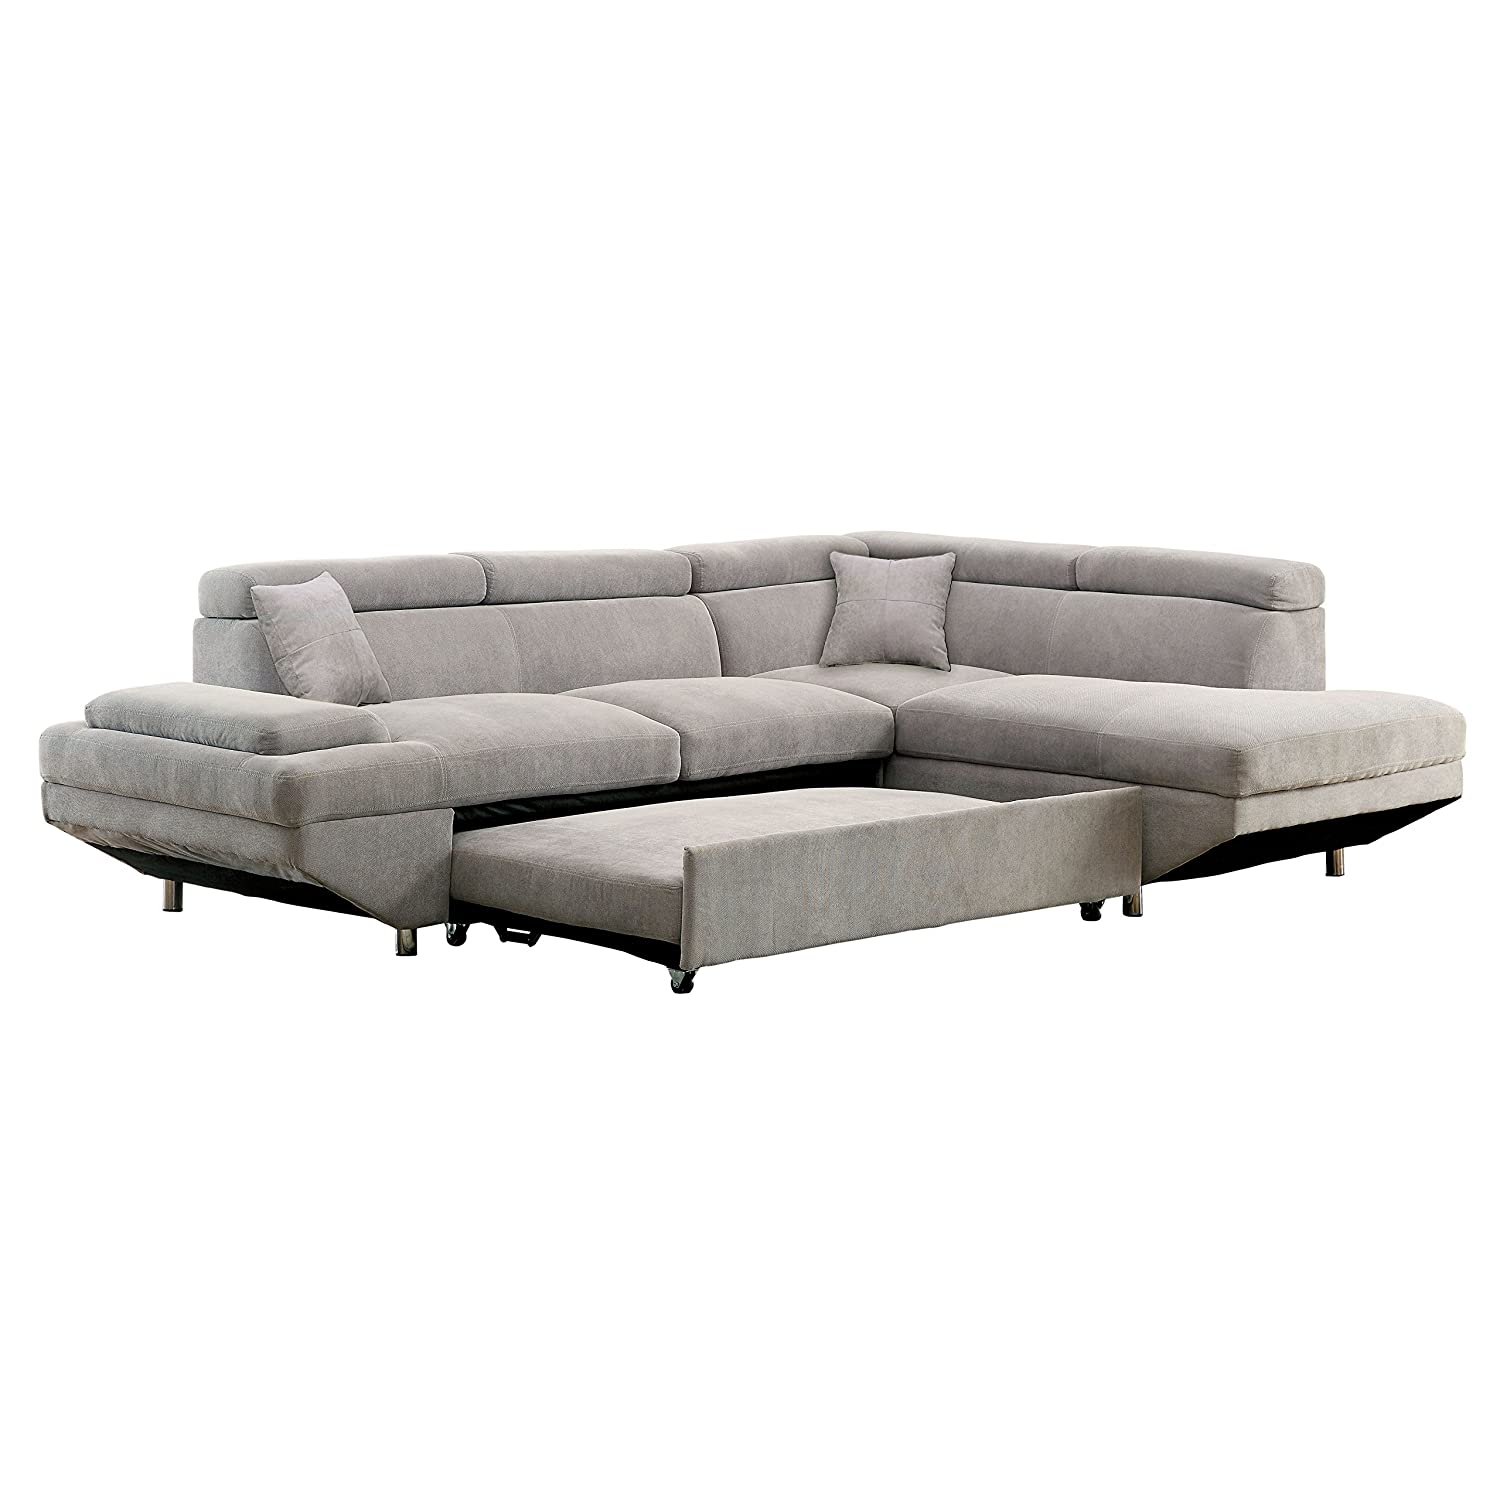 Tremendous Homes Inside Out Walters Sectional With Pull Out Sleeper Chaise Pabps2019 Chair Design Images Pabps2019Com